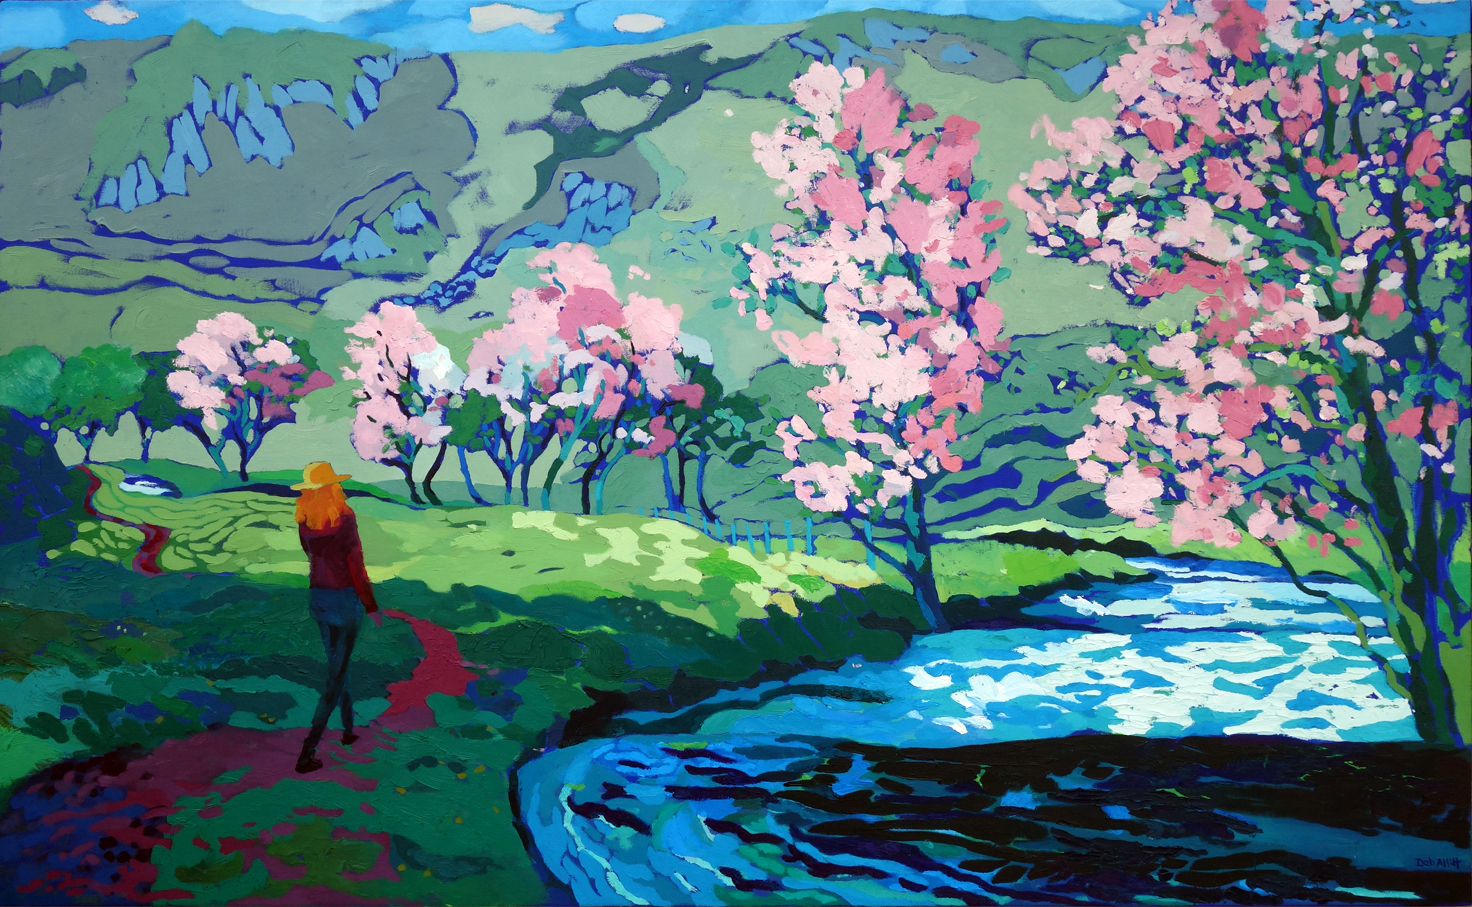 Blossom Trees, Sunny River. Oil on canvas. 100 x 161 cm